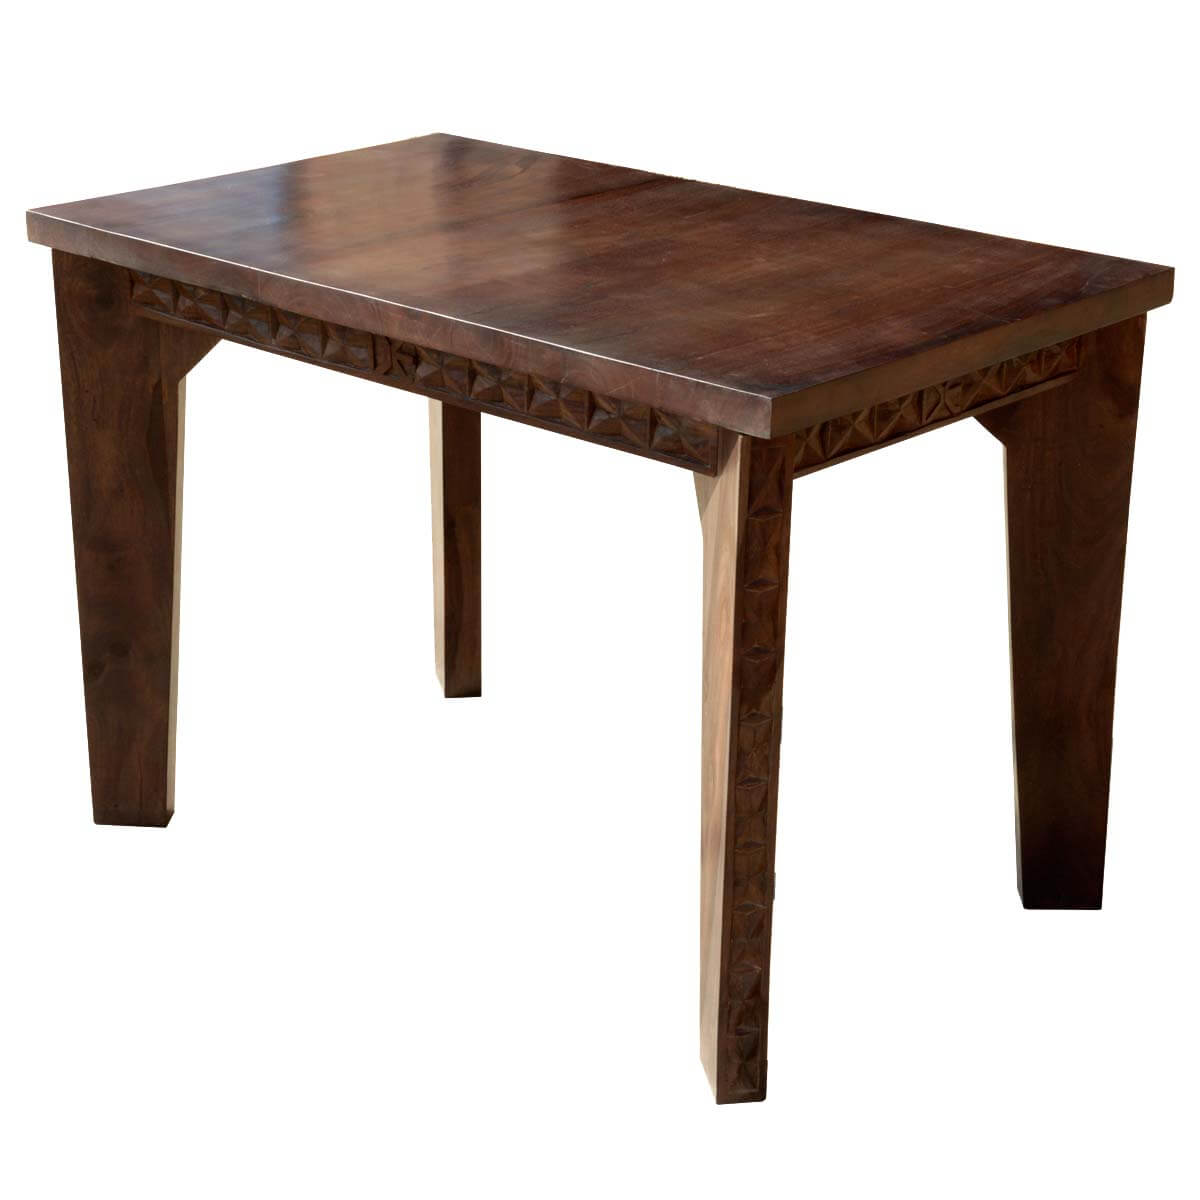 Geometric hand carved solid wood turned leg dining table